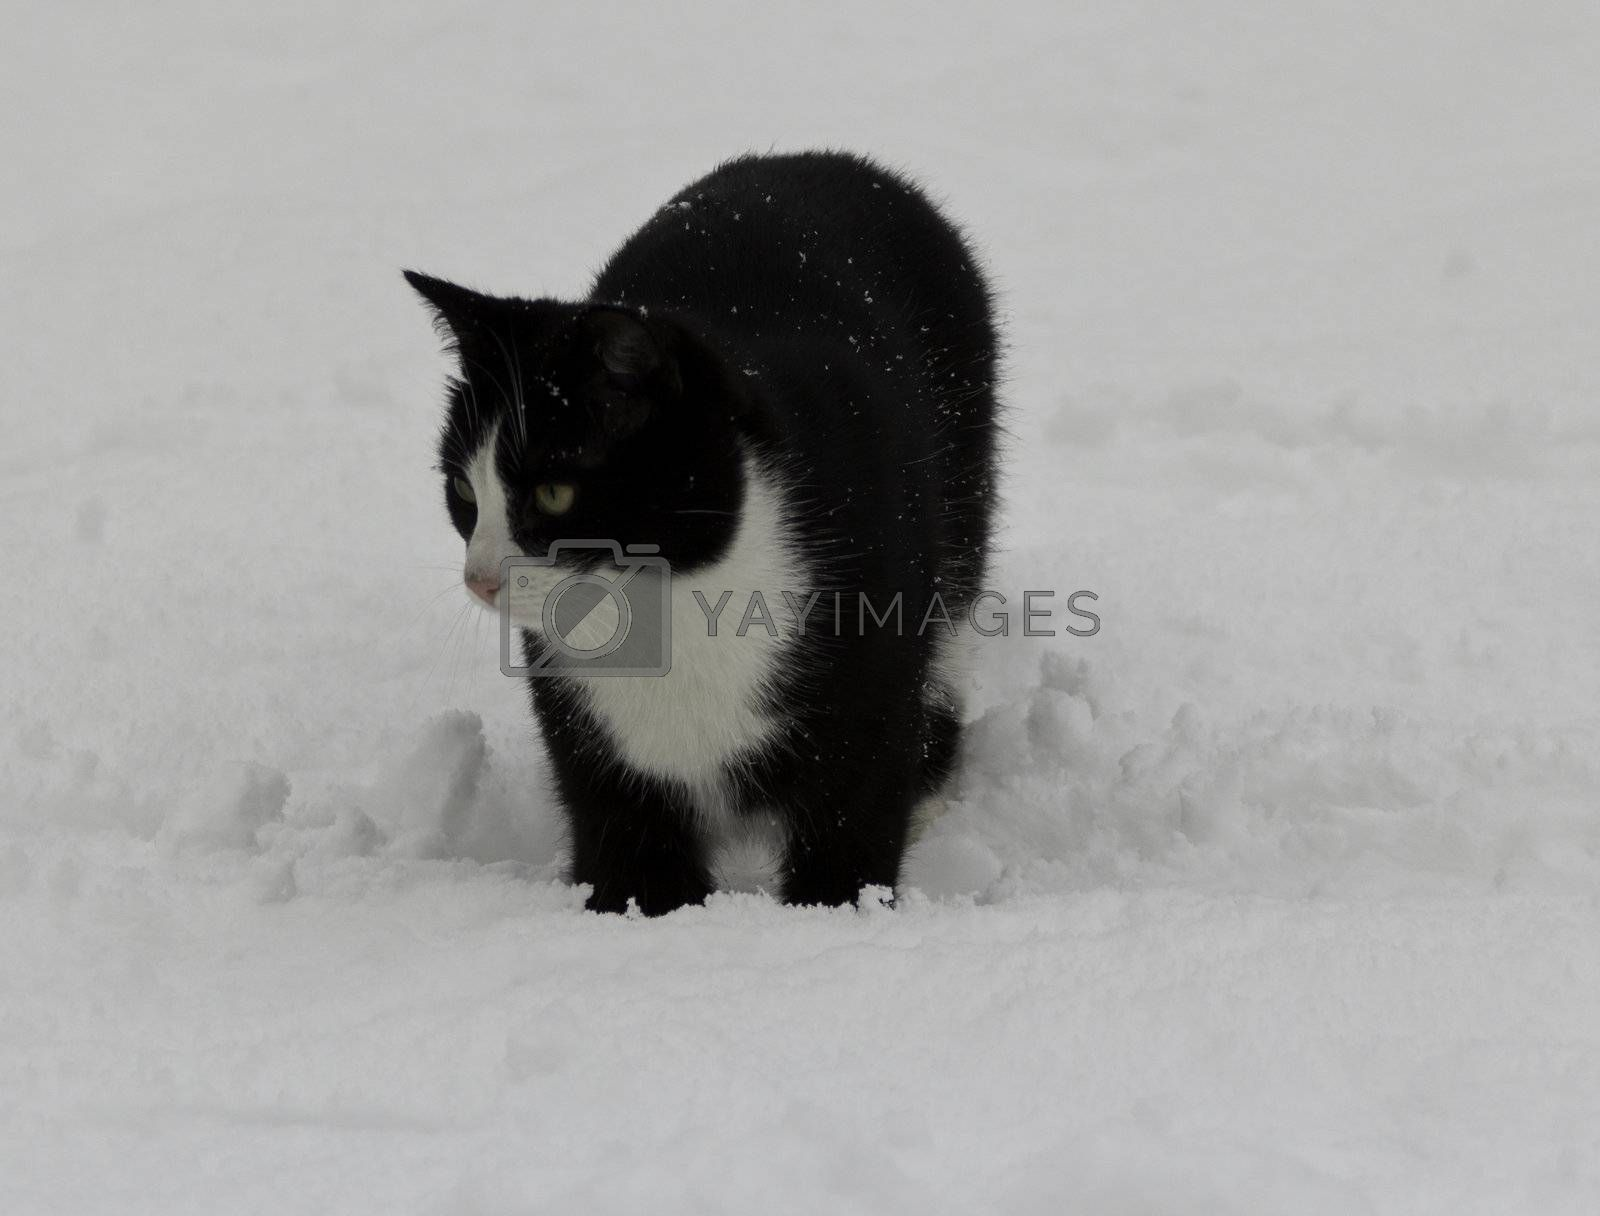 black cat in the snow